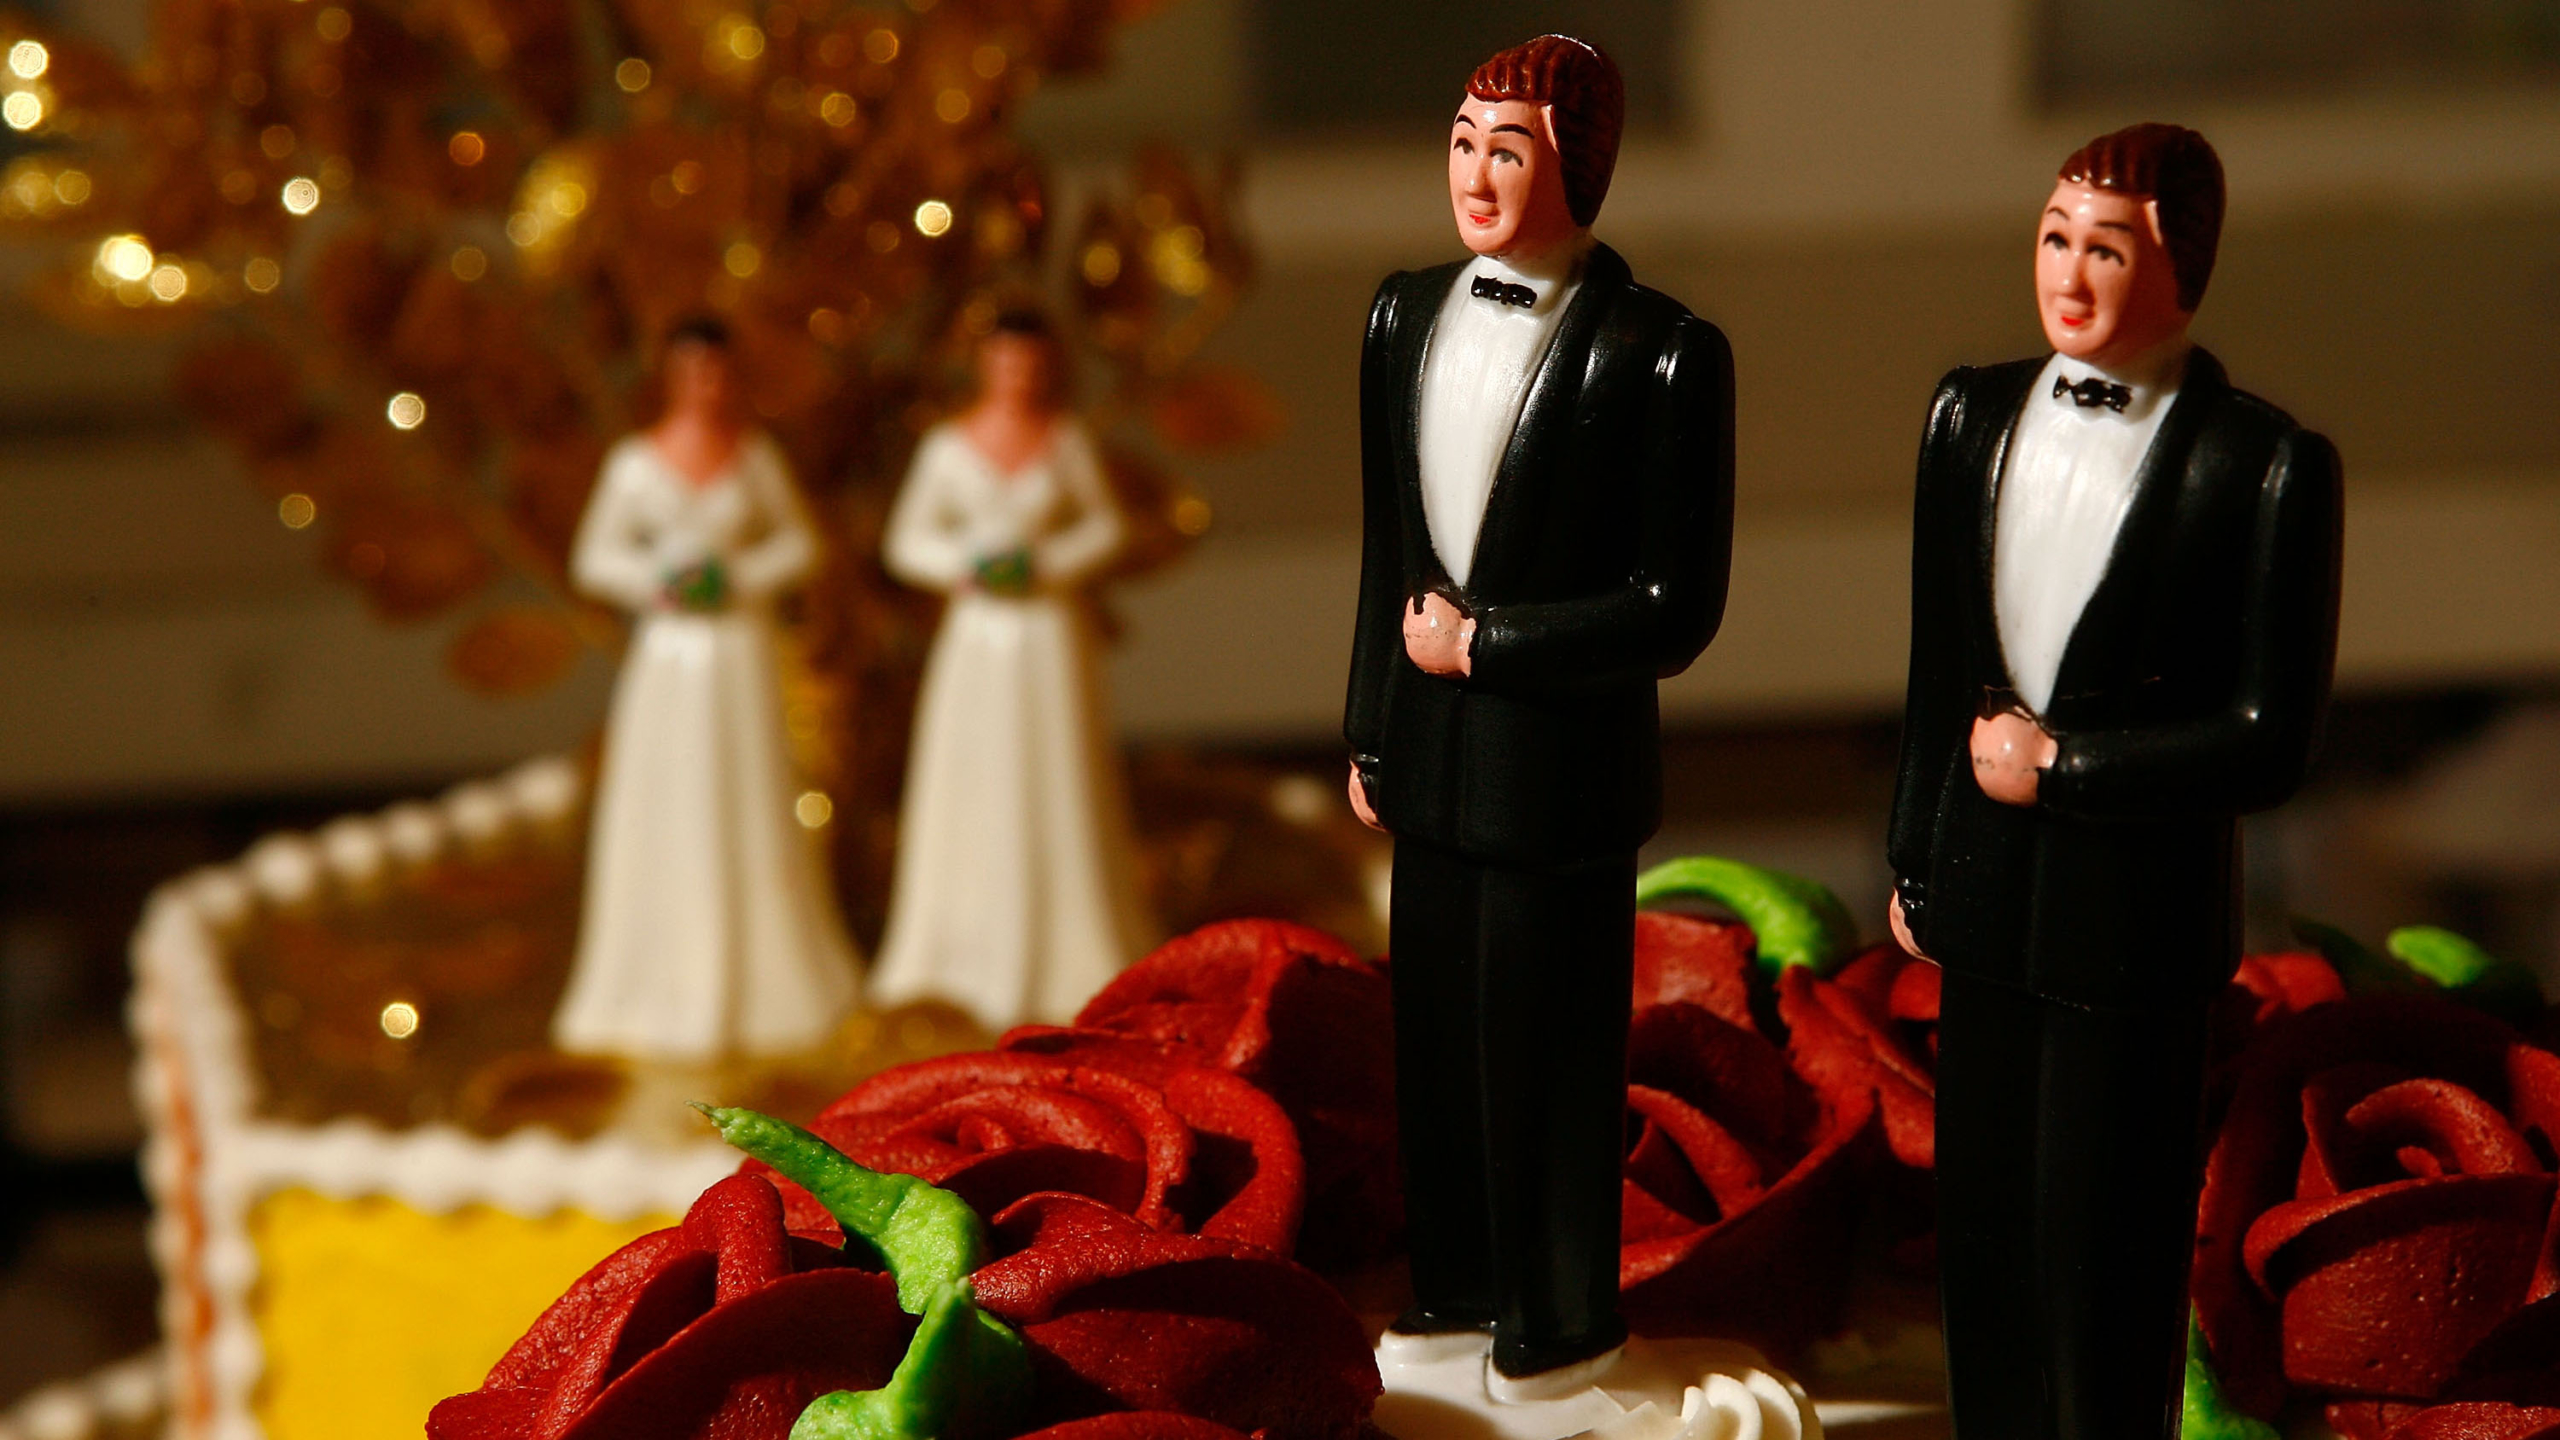 WEST HOLLYWOOD, CA - JUNE 10:  Same-sex wedding cake topper figurines are seen at Cake and Art cake decorators June 10, 2008 in West Hollywood, California. Business is increasing sharply for local wedding services in the days leading up to the start of legal marriages for gay and lesbian couples June 17. Same-sex weddings could grow the California wedding industry by $684 million and, over the next three years, add $64 million to the state's budget, a study by the Williams Institute at UCLA's law school reports. The California Supreme Court refused to stay its decision legalizing same-sex marriage despite calls by conservative and religious opponents for the court to stop same-sex couples from marrying before an initiative to amend the state constitution to ban gay marriage goes to ballot in November.   (Photo by David McNew/Getty Images)